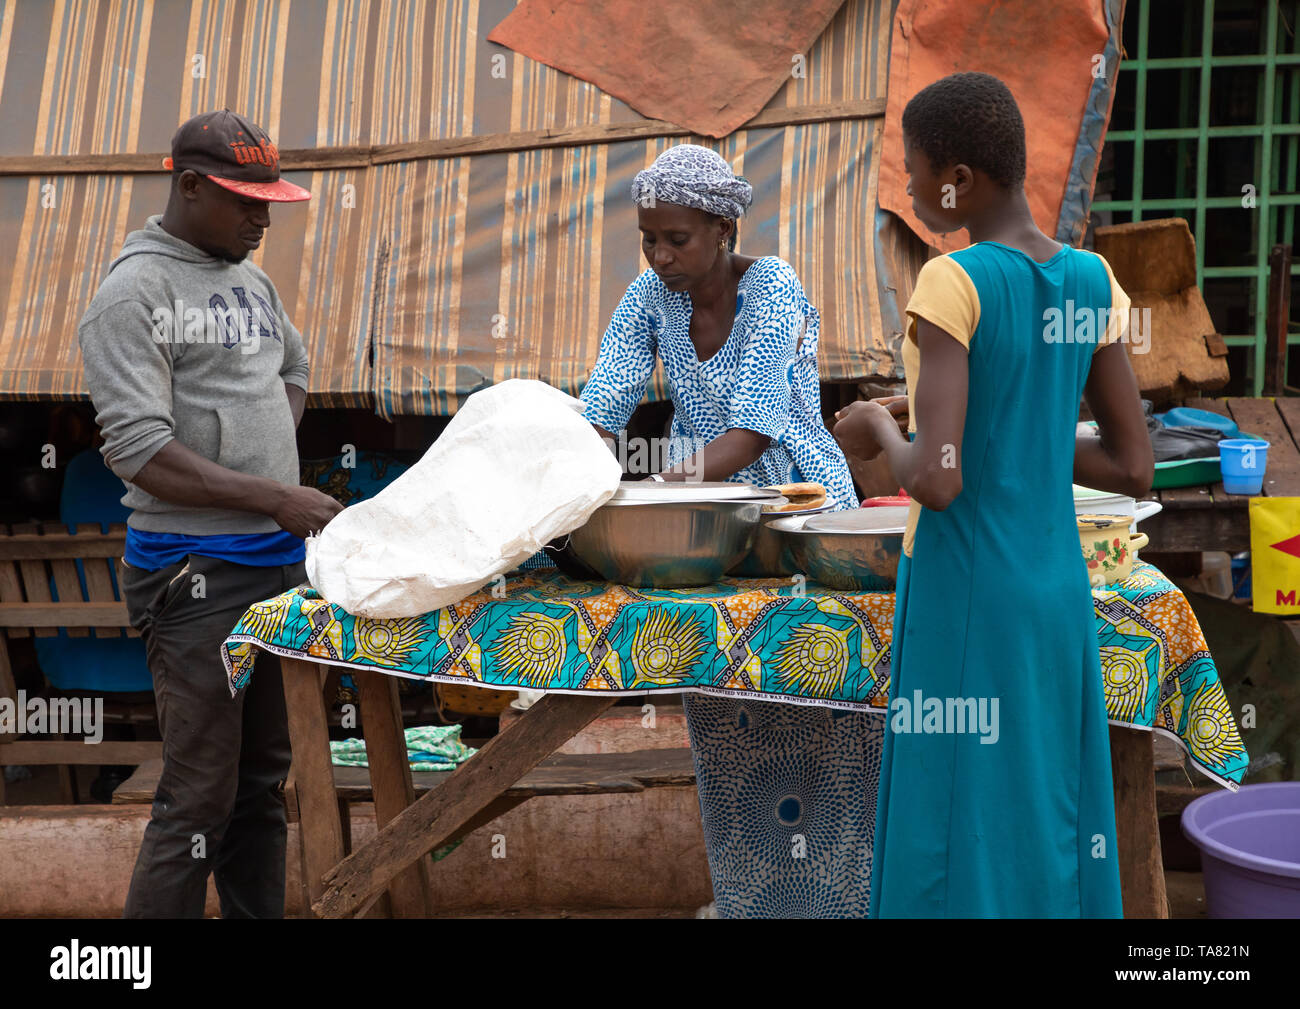 African woman sellling food in the sreet, Savanes district, Boundiali, Ivory Coast - Stock Image